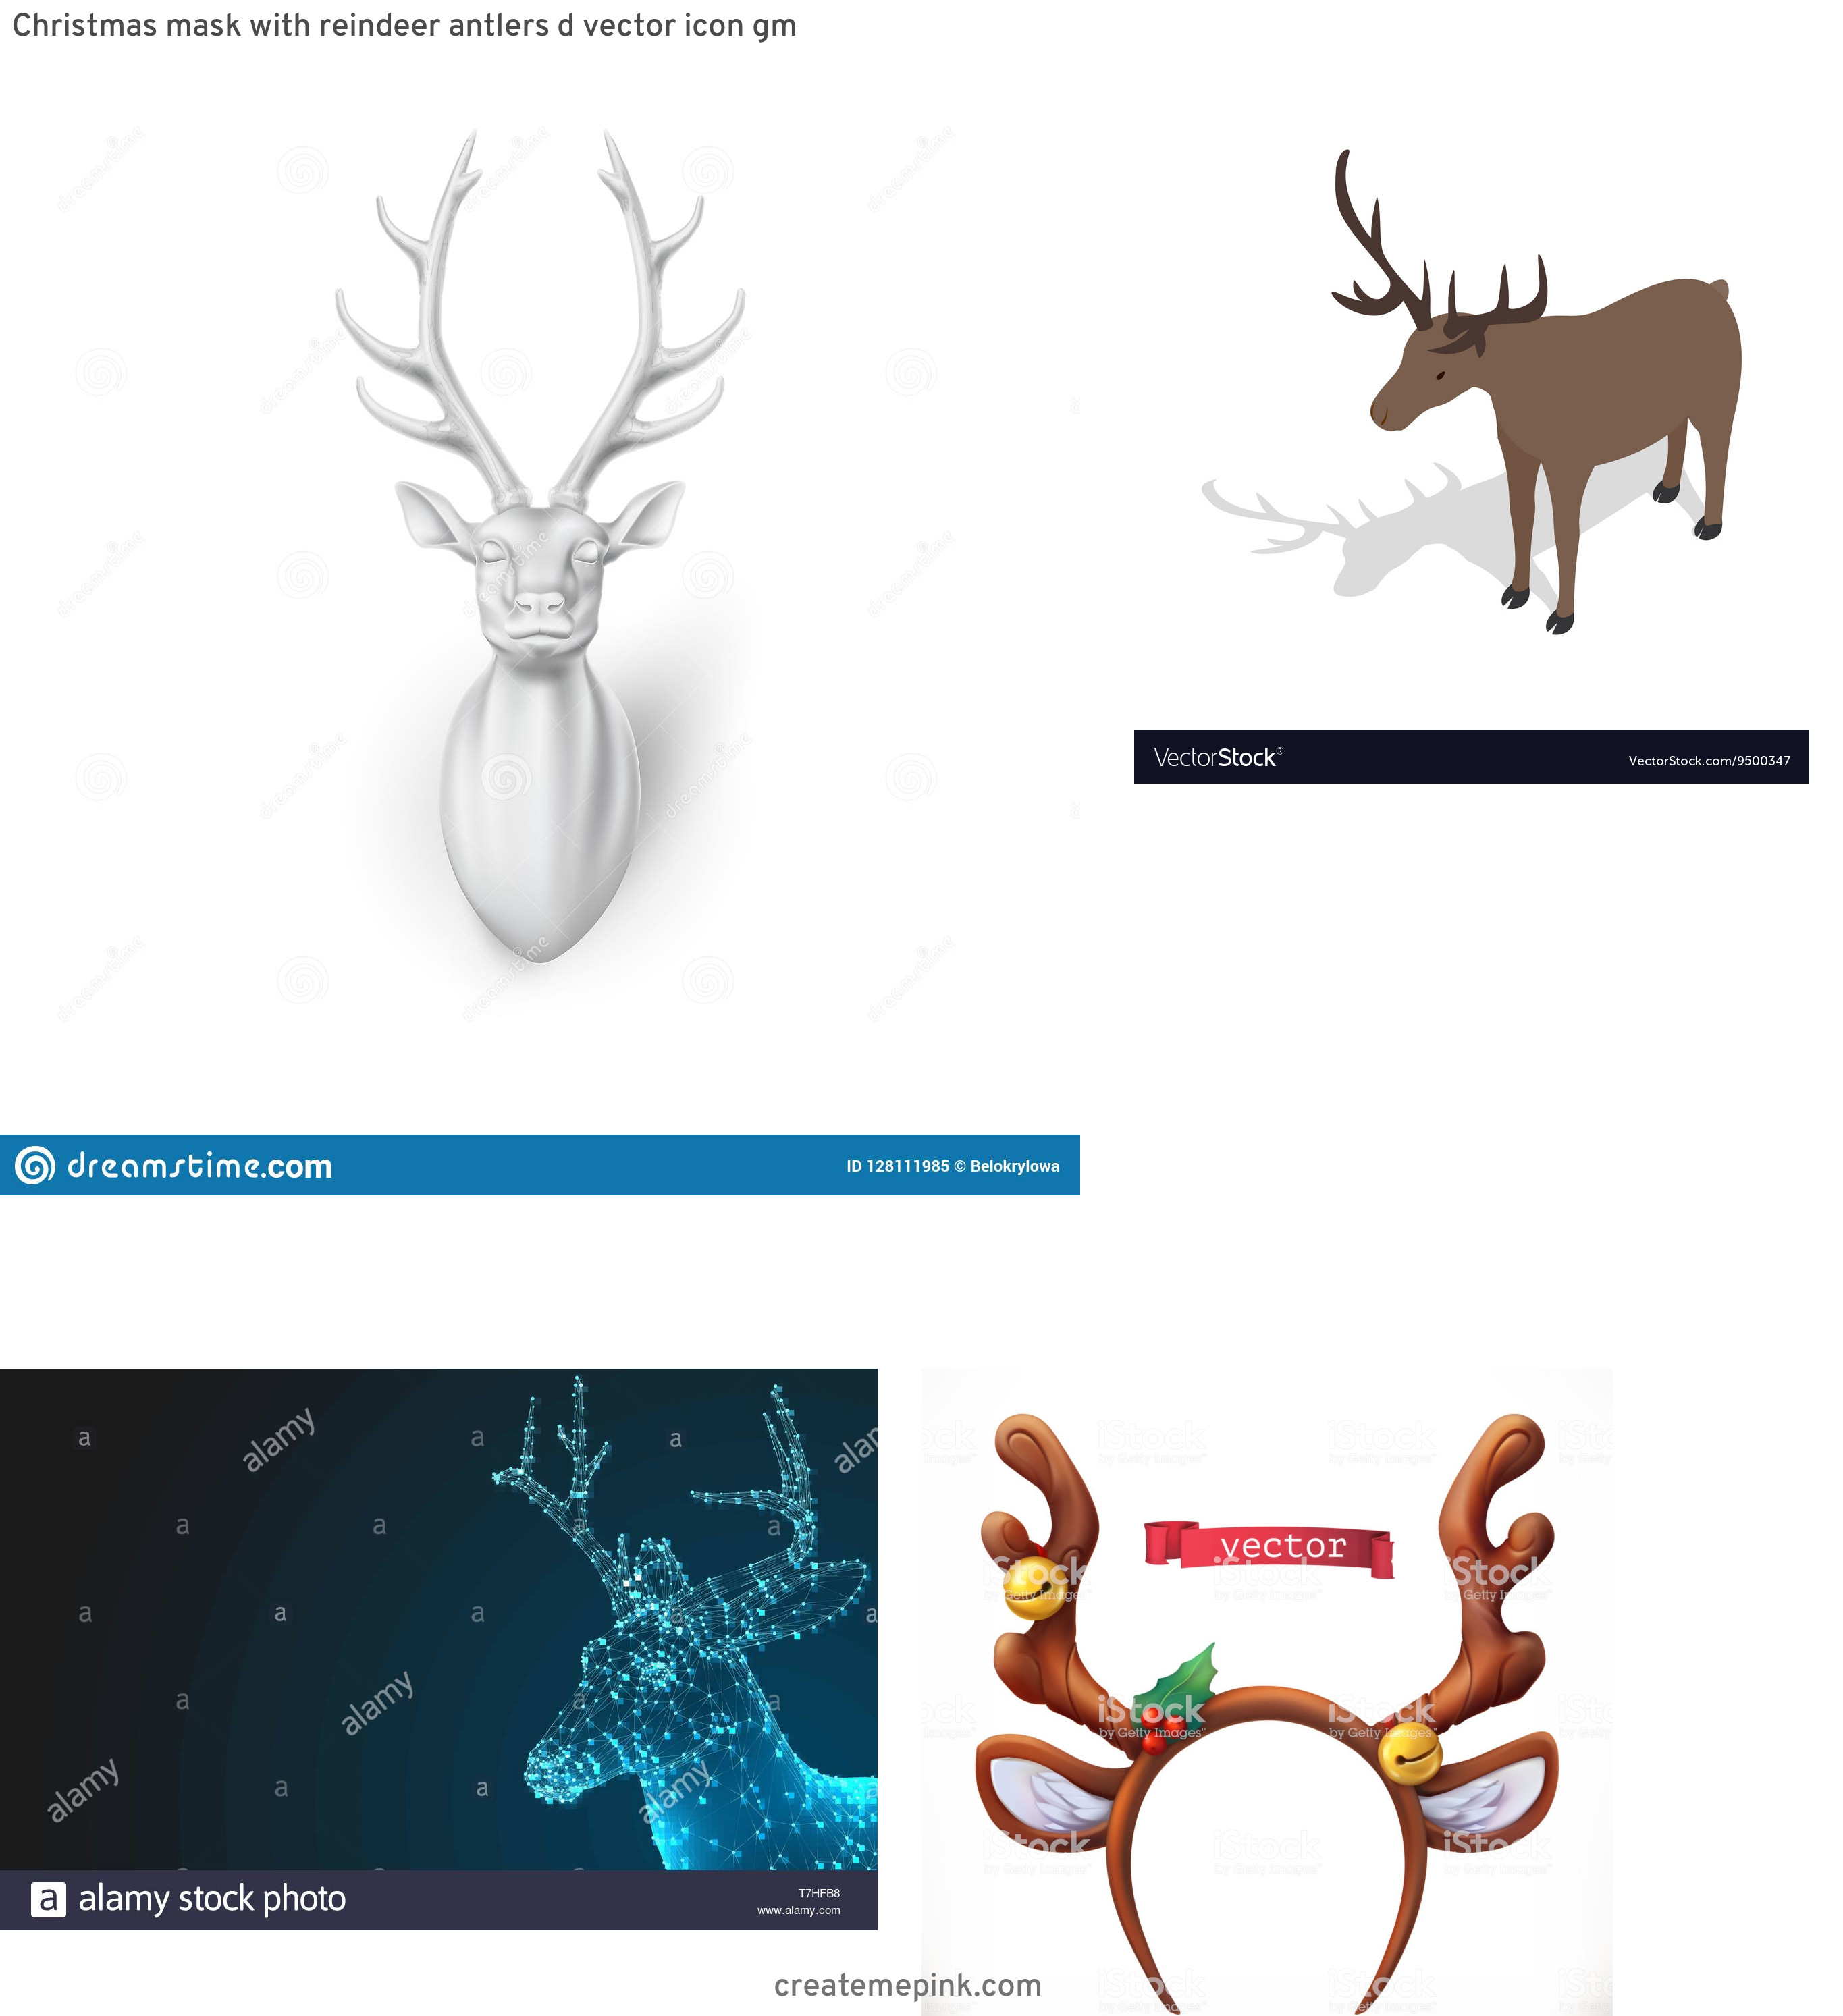 3D Vector Of A Deer: Christmas Mask With Reindeer Antlers D Vector Icon Gm